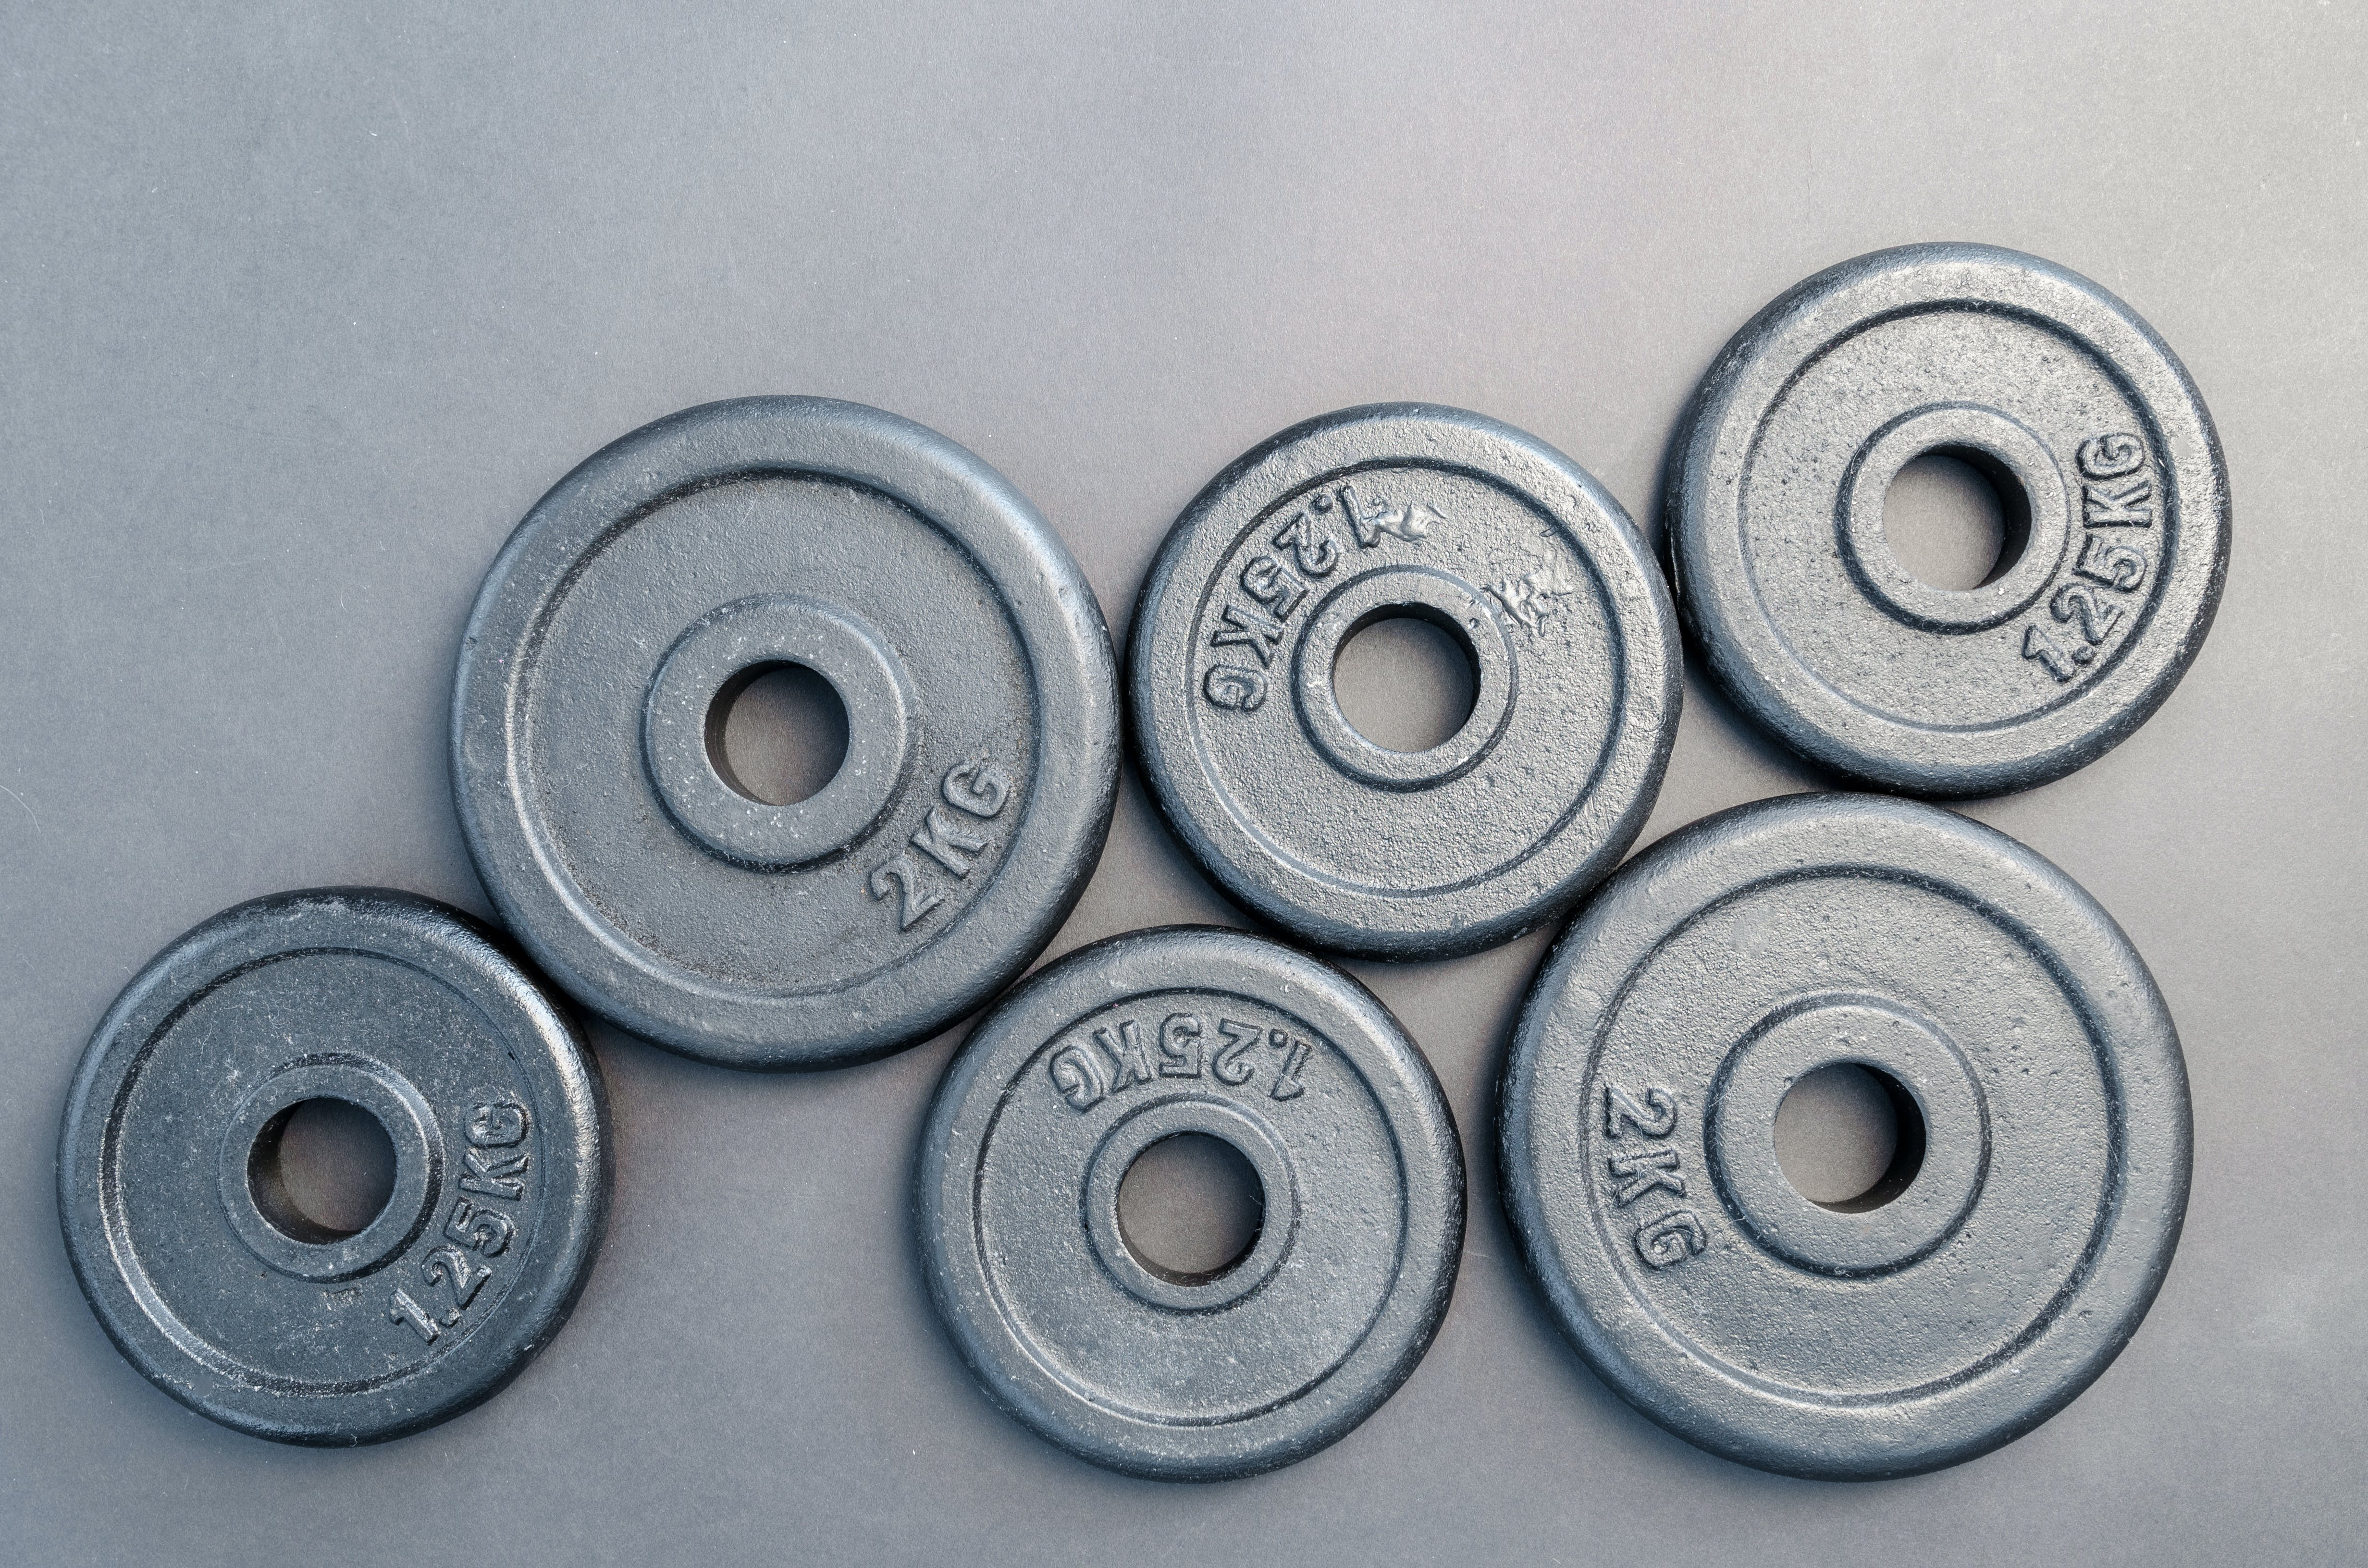 Six Assorted Weight Plates